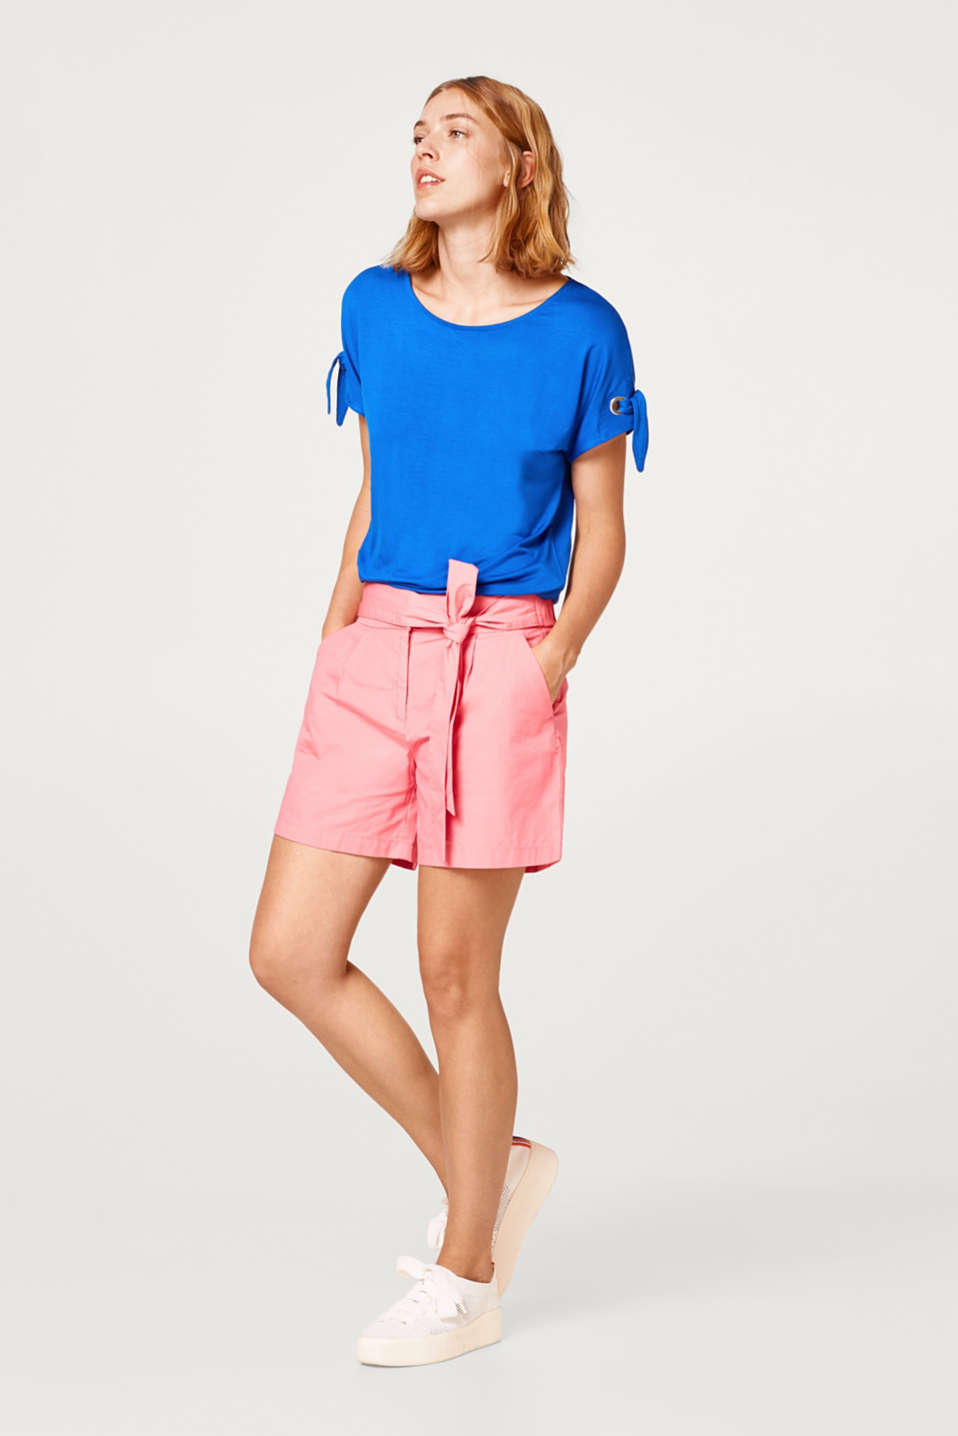 Stretch T-shirt with bows at the sleeves